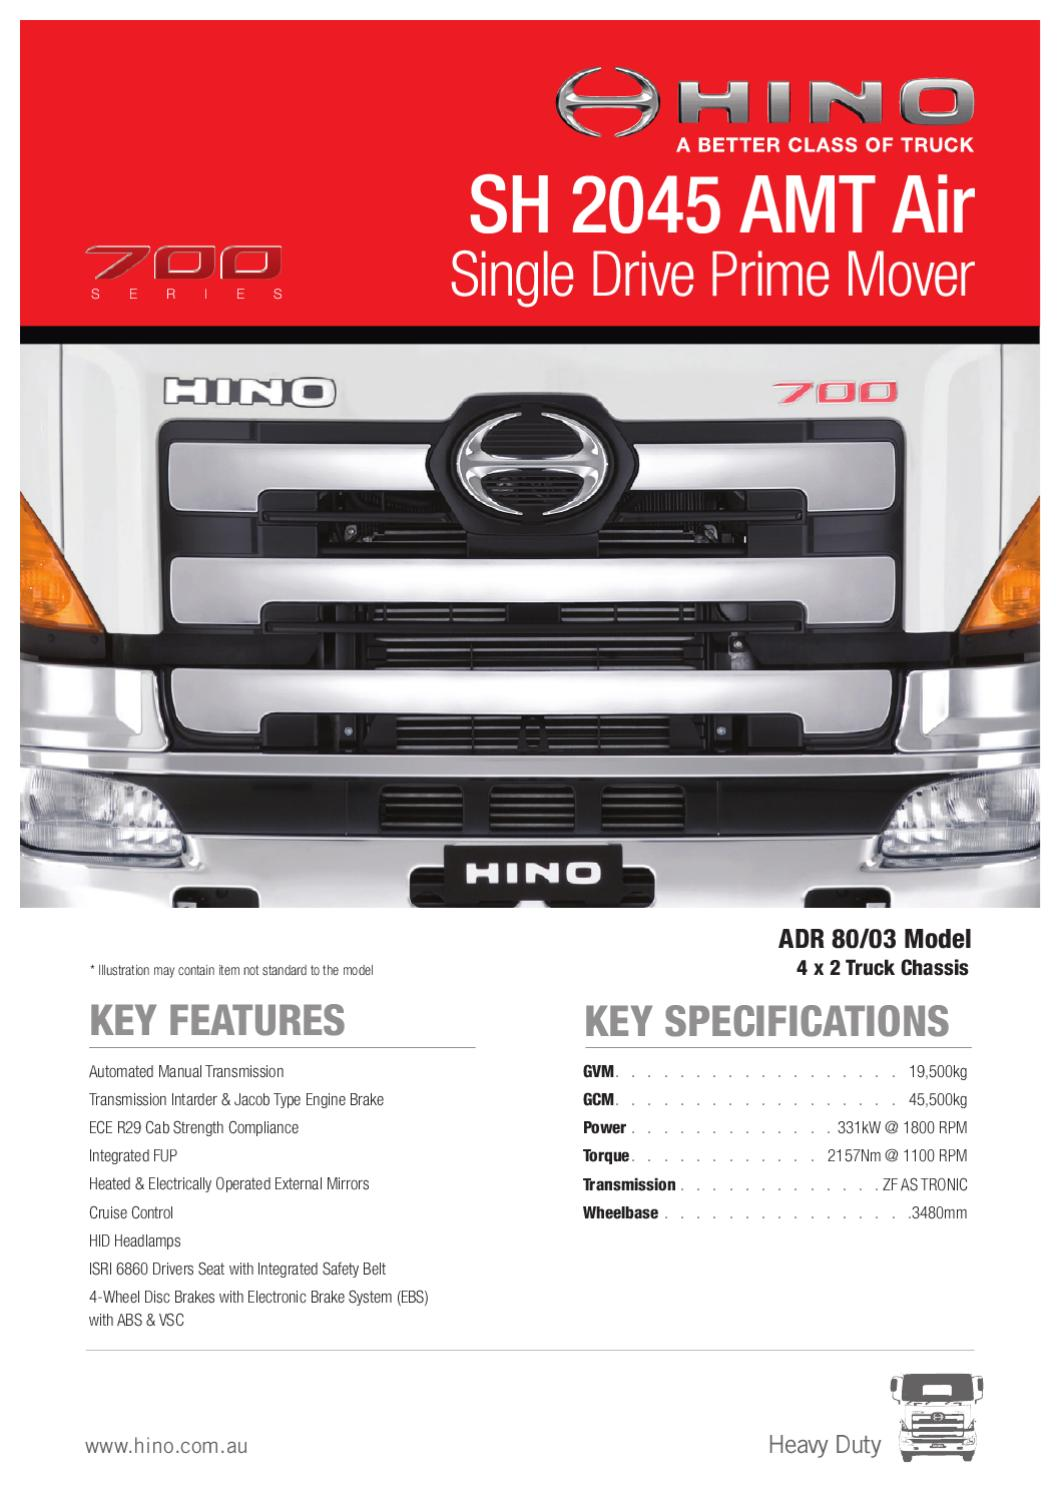 Hino 700 Wiring Diagram Trusted Schematics Truck Series Sh 2045 Amt Air Spec Sheet By Justin Edwards Issuu Engine Diagrams